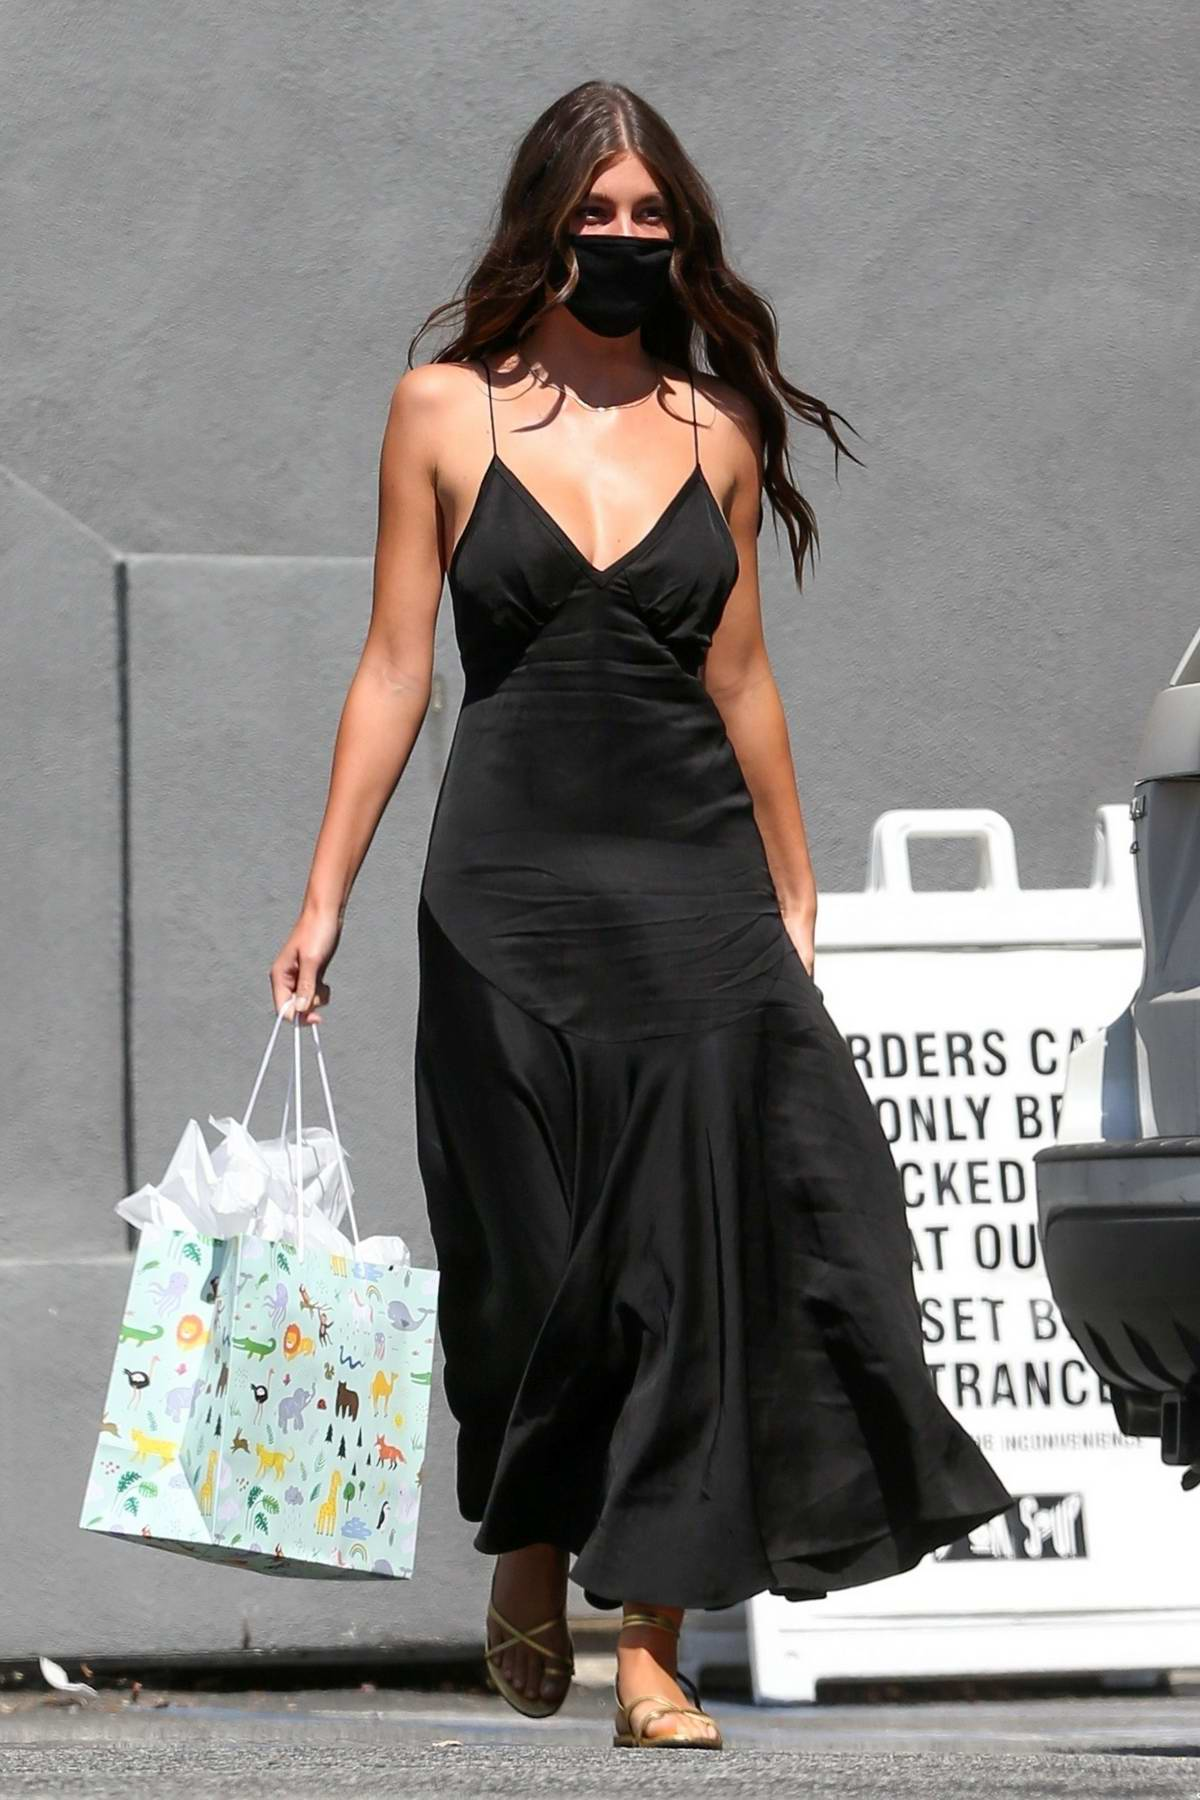 Camila Morrone looks stunning in a black dress while out shopping on Sunset Blvd in Hollywood, California